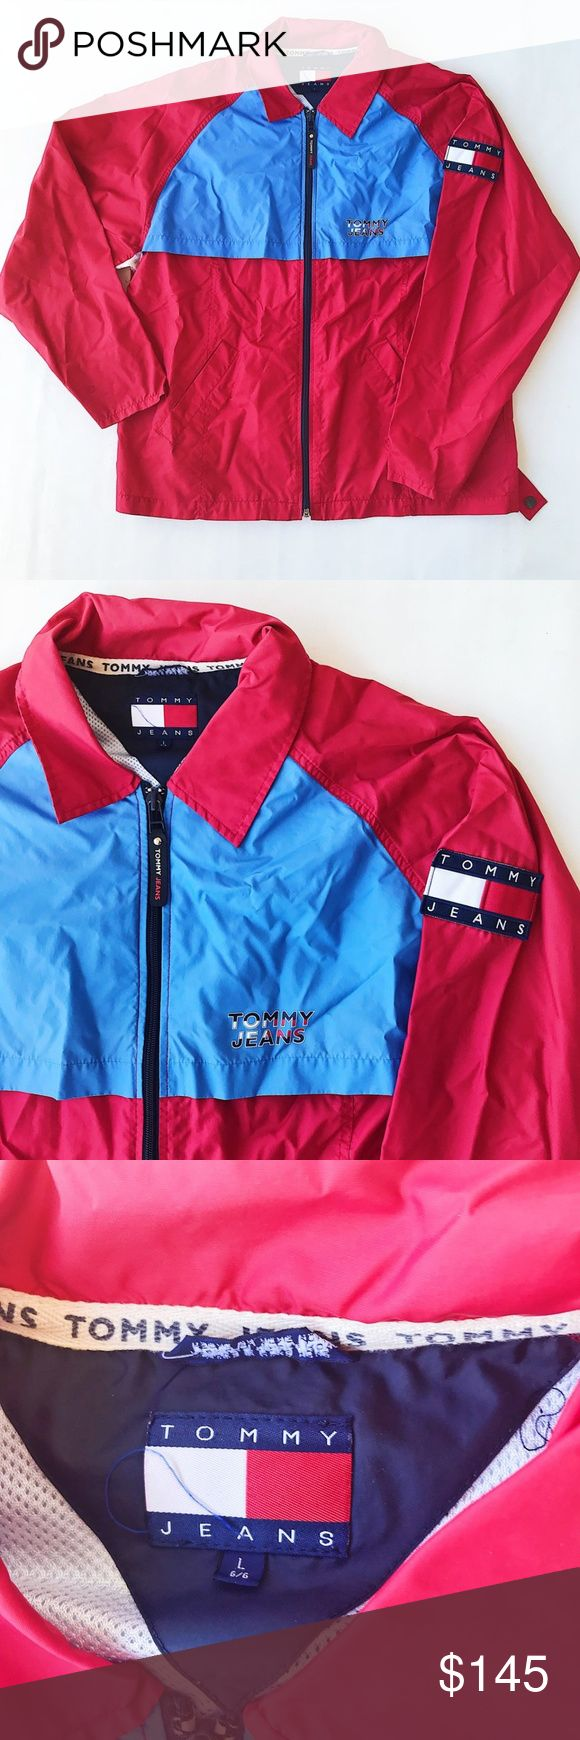 TOMMY HILFIGER VTG COLORBLOCK WINDBREAKER JACKET Vintage 90s Tommy Hilfiger Jeans Colorblock full zip Windbreaker Jacket. Men's size Large. Excellent vintage condition aside from some marks on the back. The piece features a printed tommy Jeans spellout and a Tommy jeans flag patch on the sleeve. Tommy Hilfiger Jackets & Coats